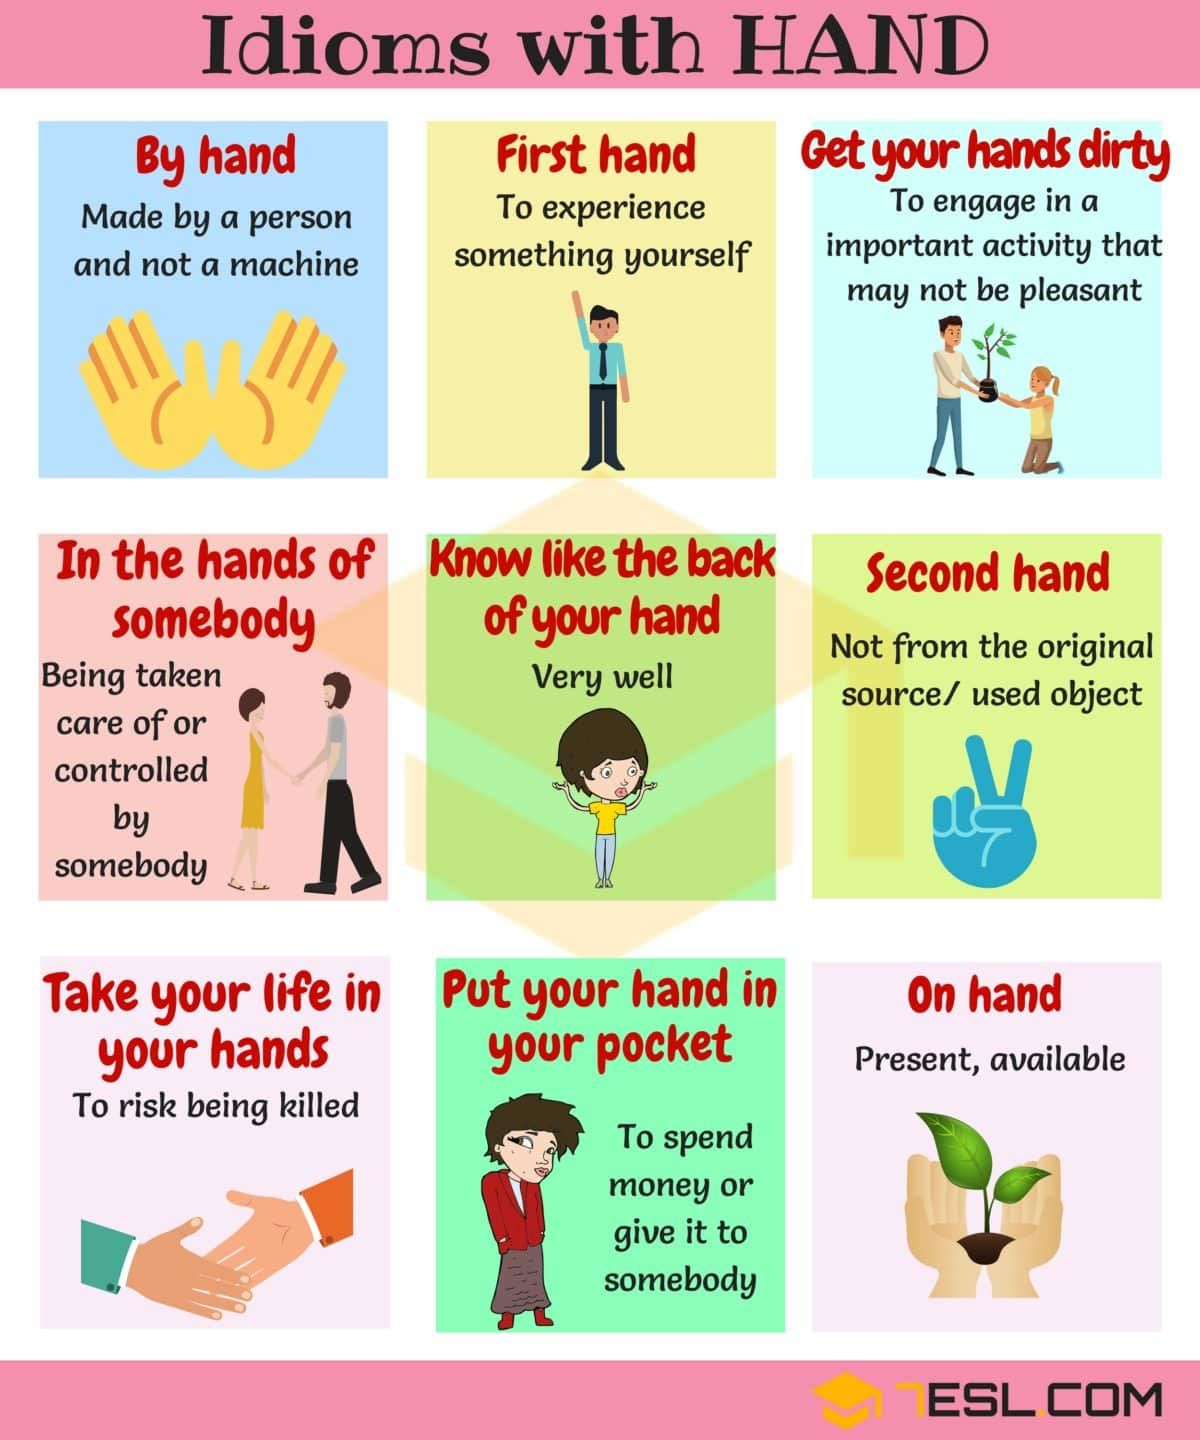 Hand Idioms 25 Useful Idioms Amp Sayings About Hands